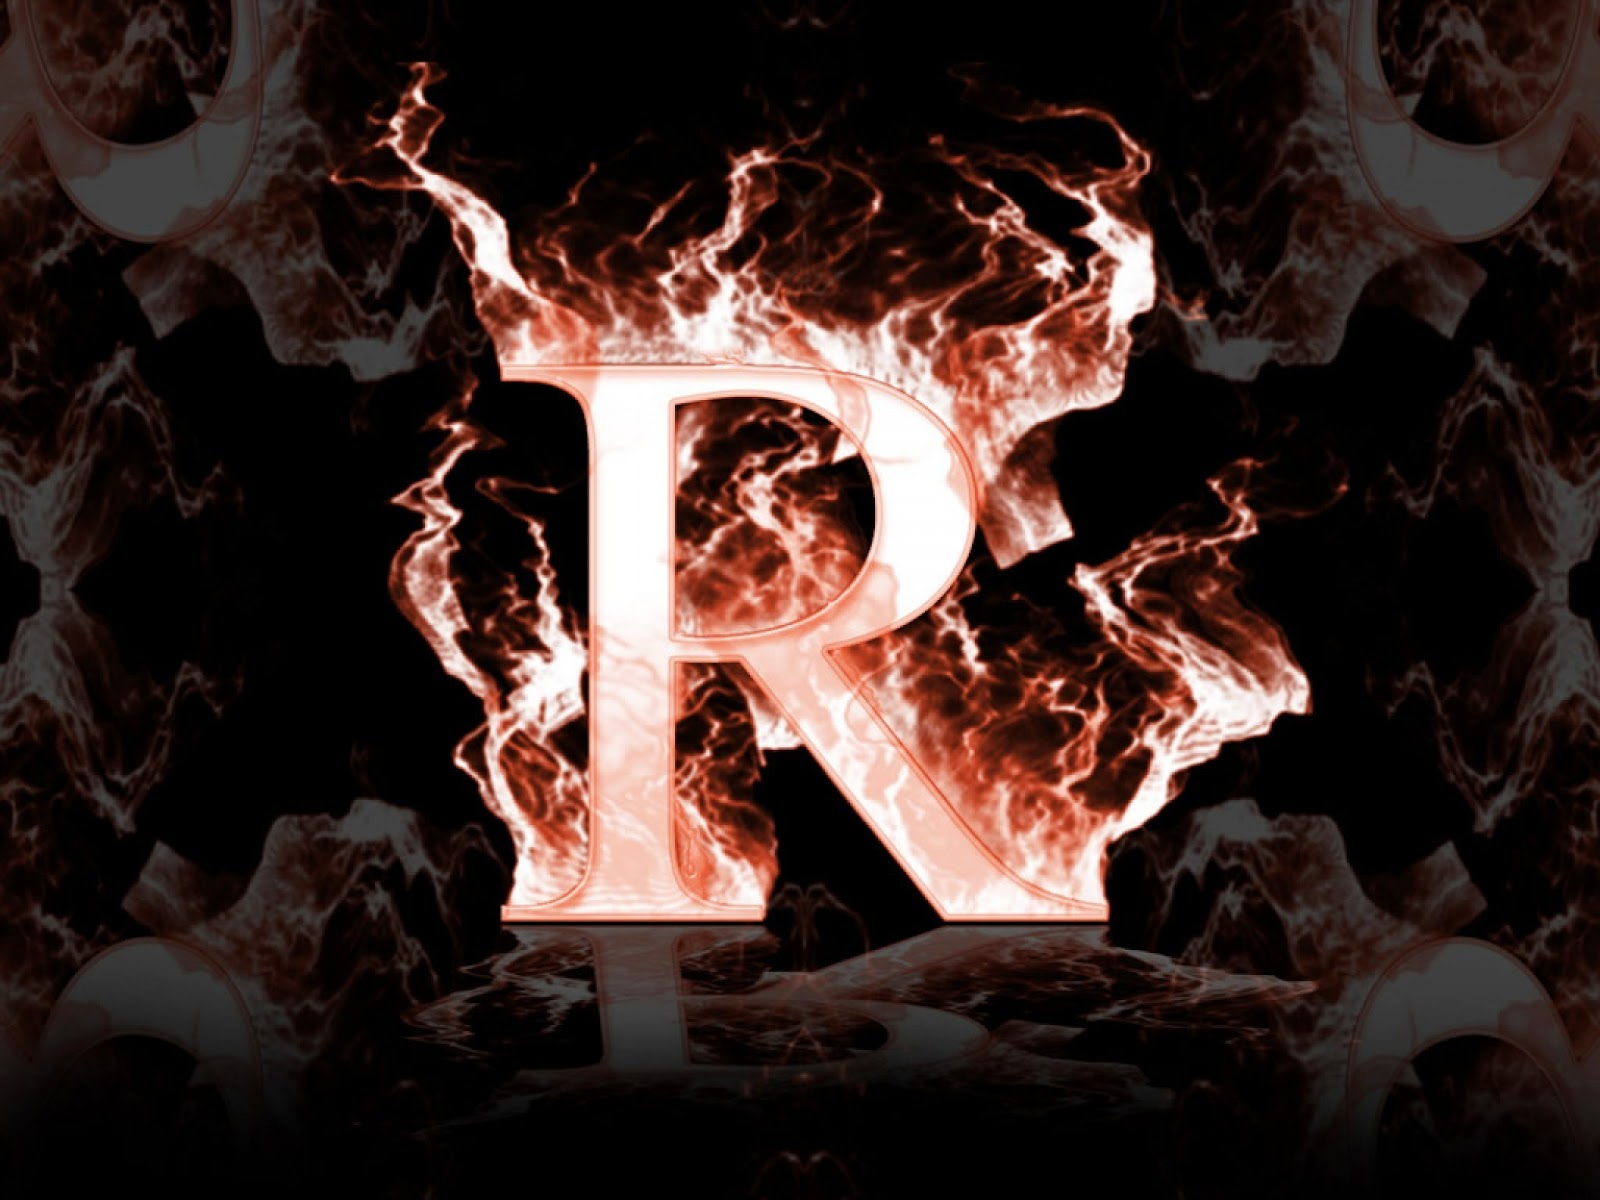 R Wallpaper - WallpaperSafari